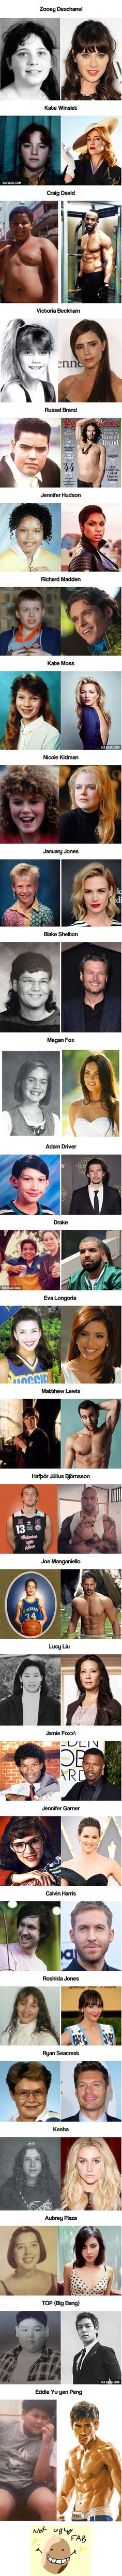 28 Celebrities Make You Think Twice Before Calling Someone Ugly In School